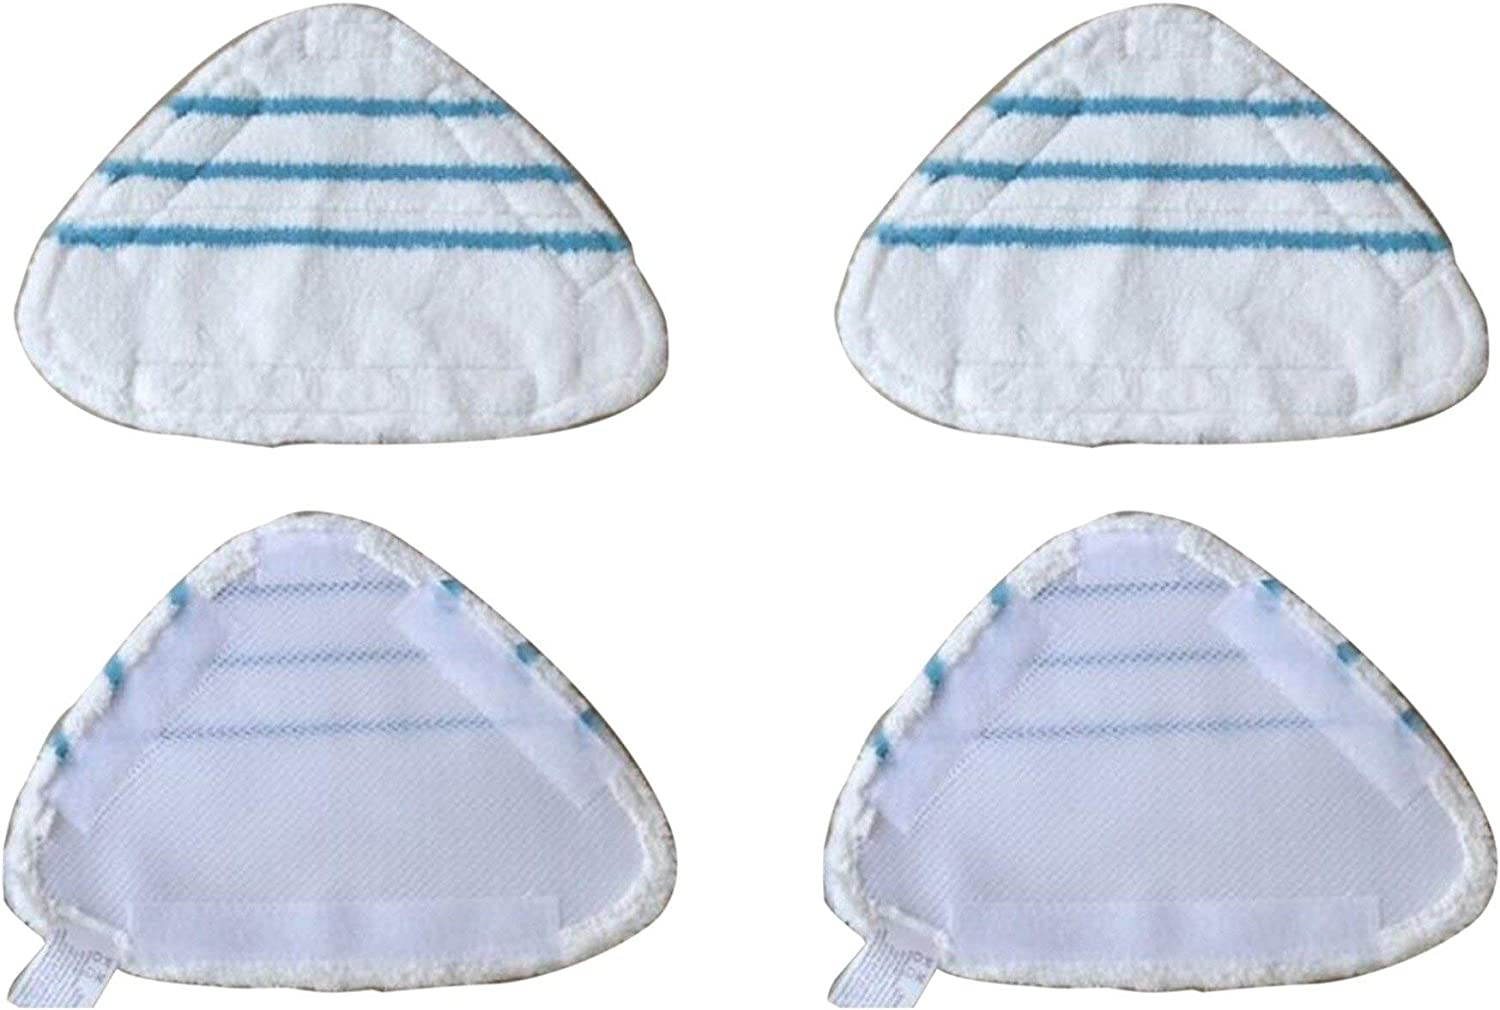 True Tidy Mop Pad Max 56% OFF Pack Refill for Long-awaited STM-7 STM-500 and STM-700